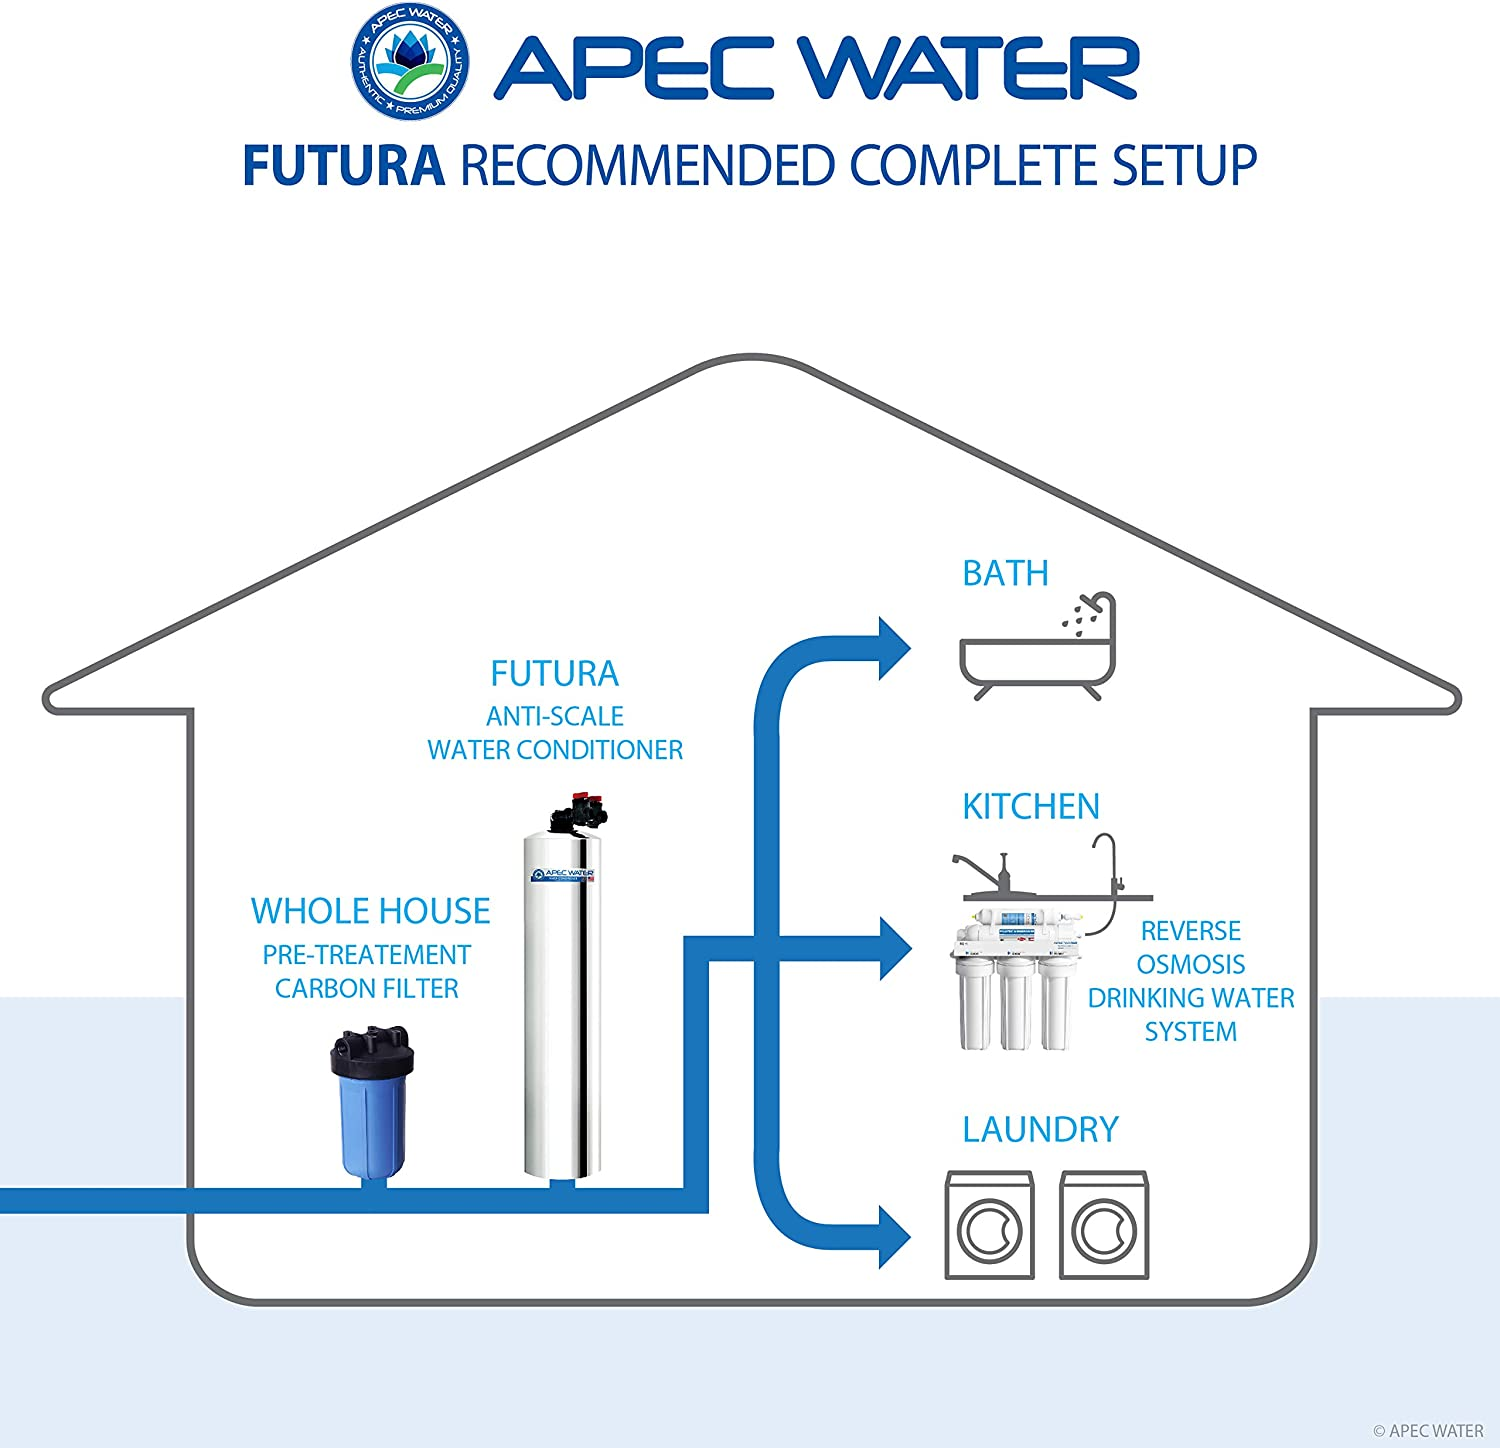 APEC Water Systems FUTURA-15 Premium 15 GPM Whole House Salt-Free Water Softener /& Water Conditioner